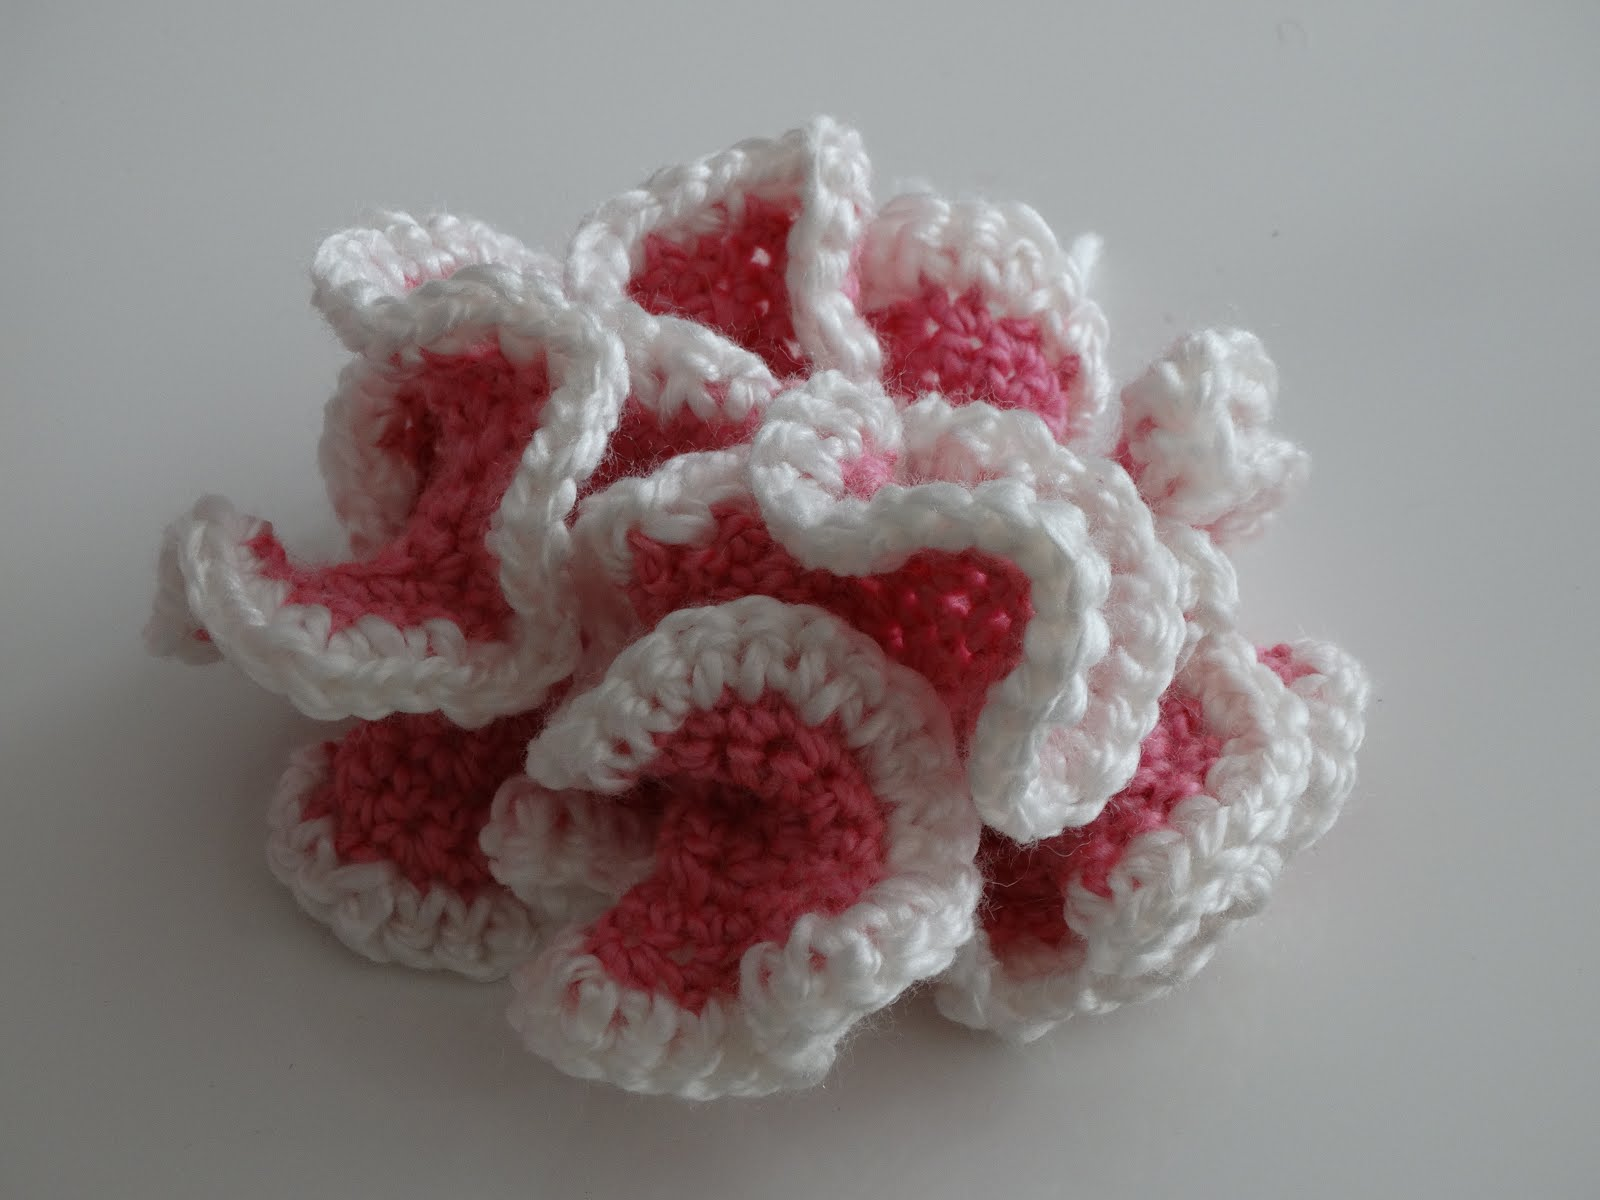 Crocheted Hyperbolic Geometry